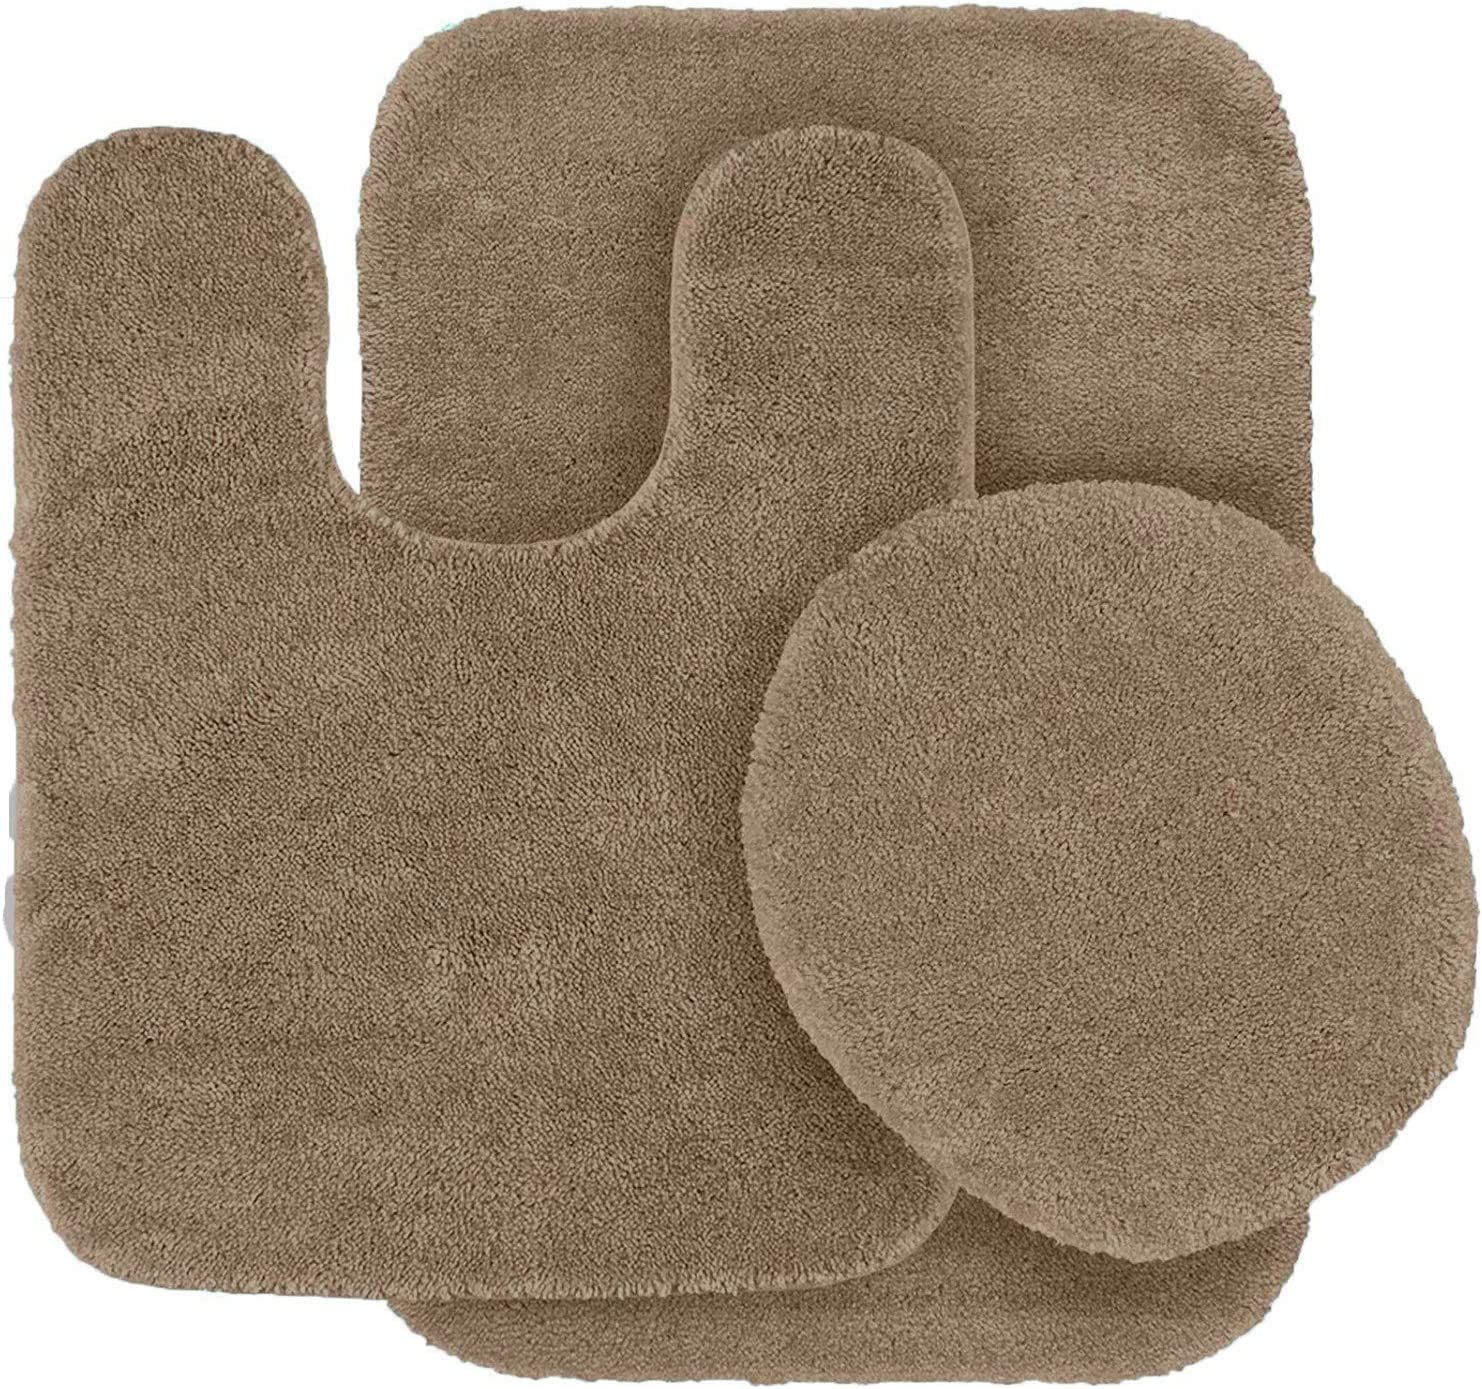 Amazon Com Mk Home Collection 3 Piece Bathroom Rug Set Bath Contour Mat Lid Cover Non Slip With Rubber Backing Solid Beige New Kitchen Dining